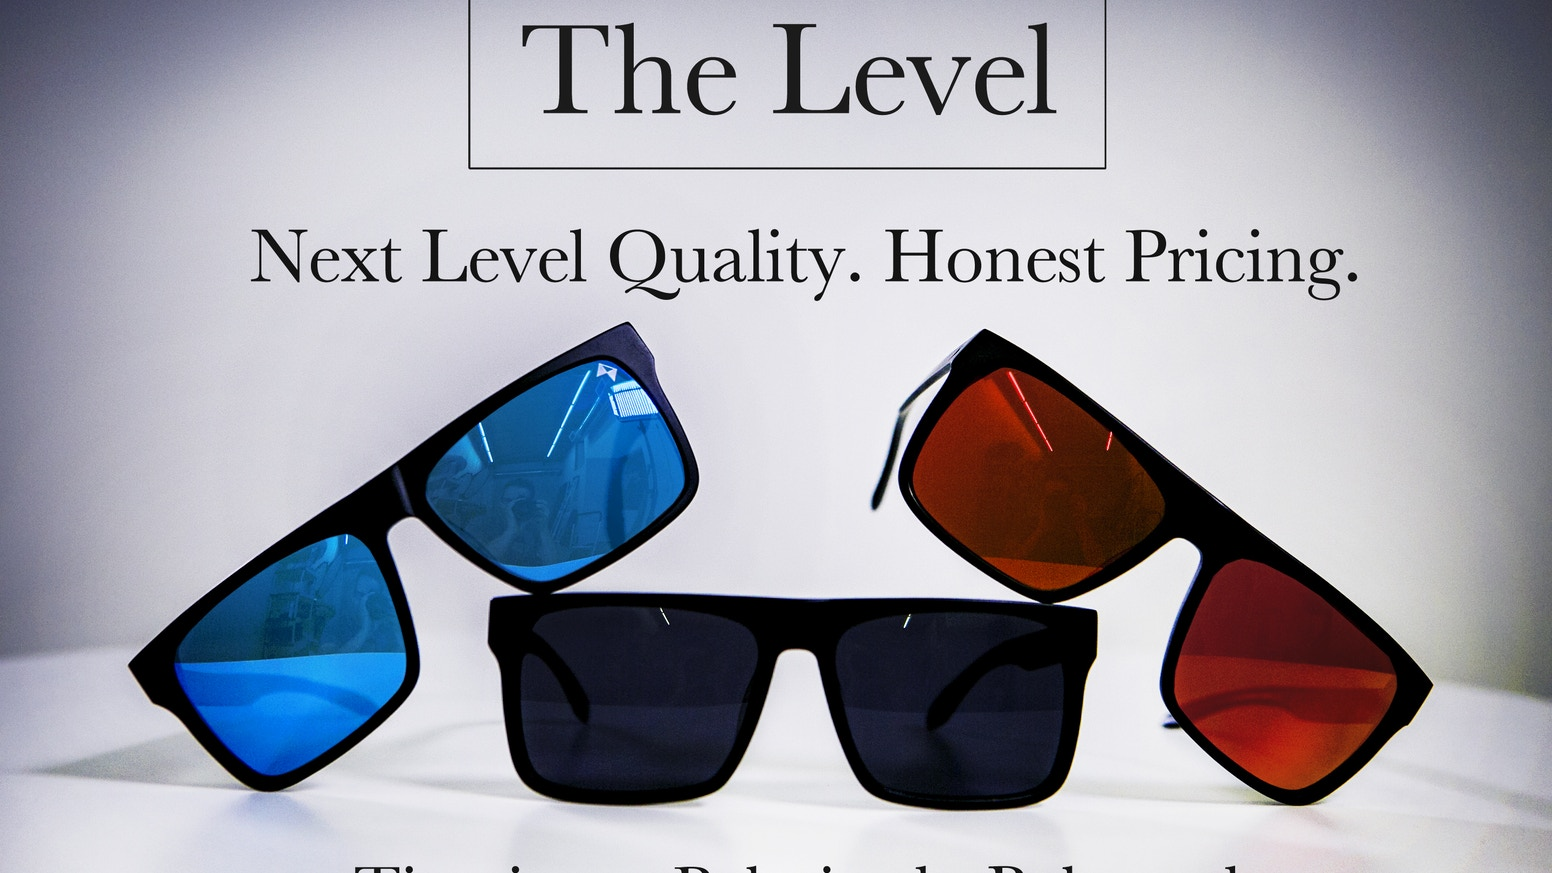 THE LEVEL - Aerospace Titanium Sunglasses at an Honest Price